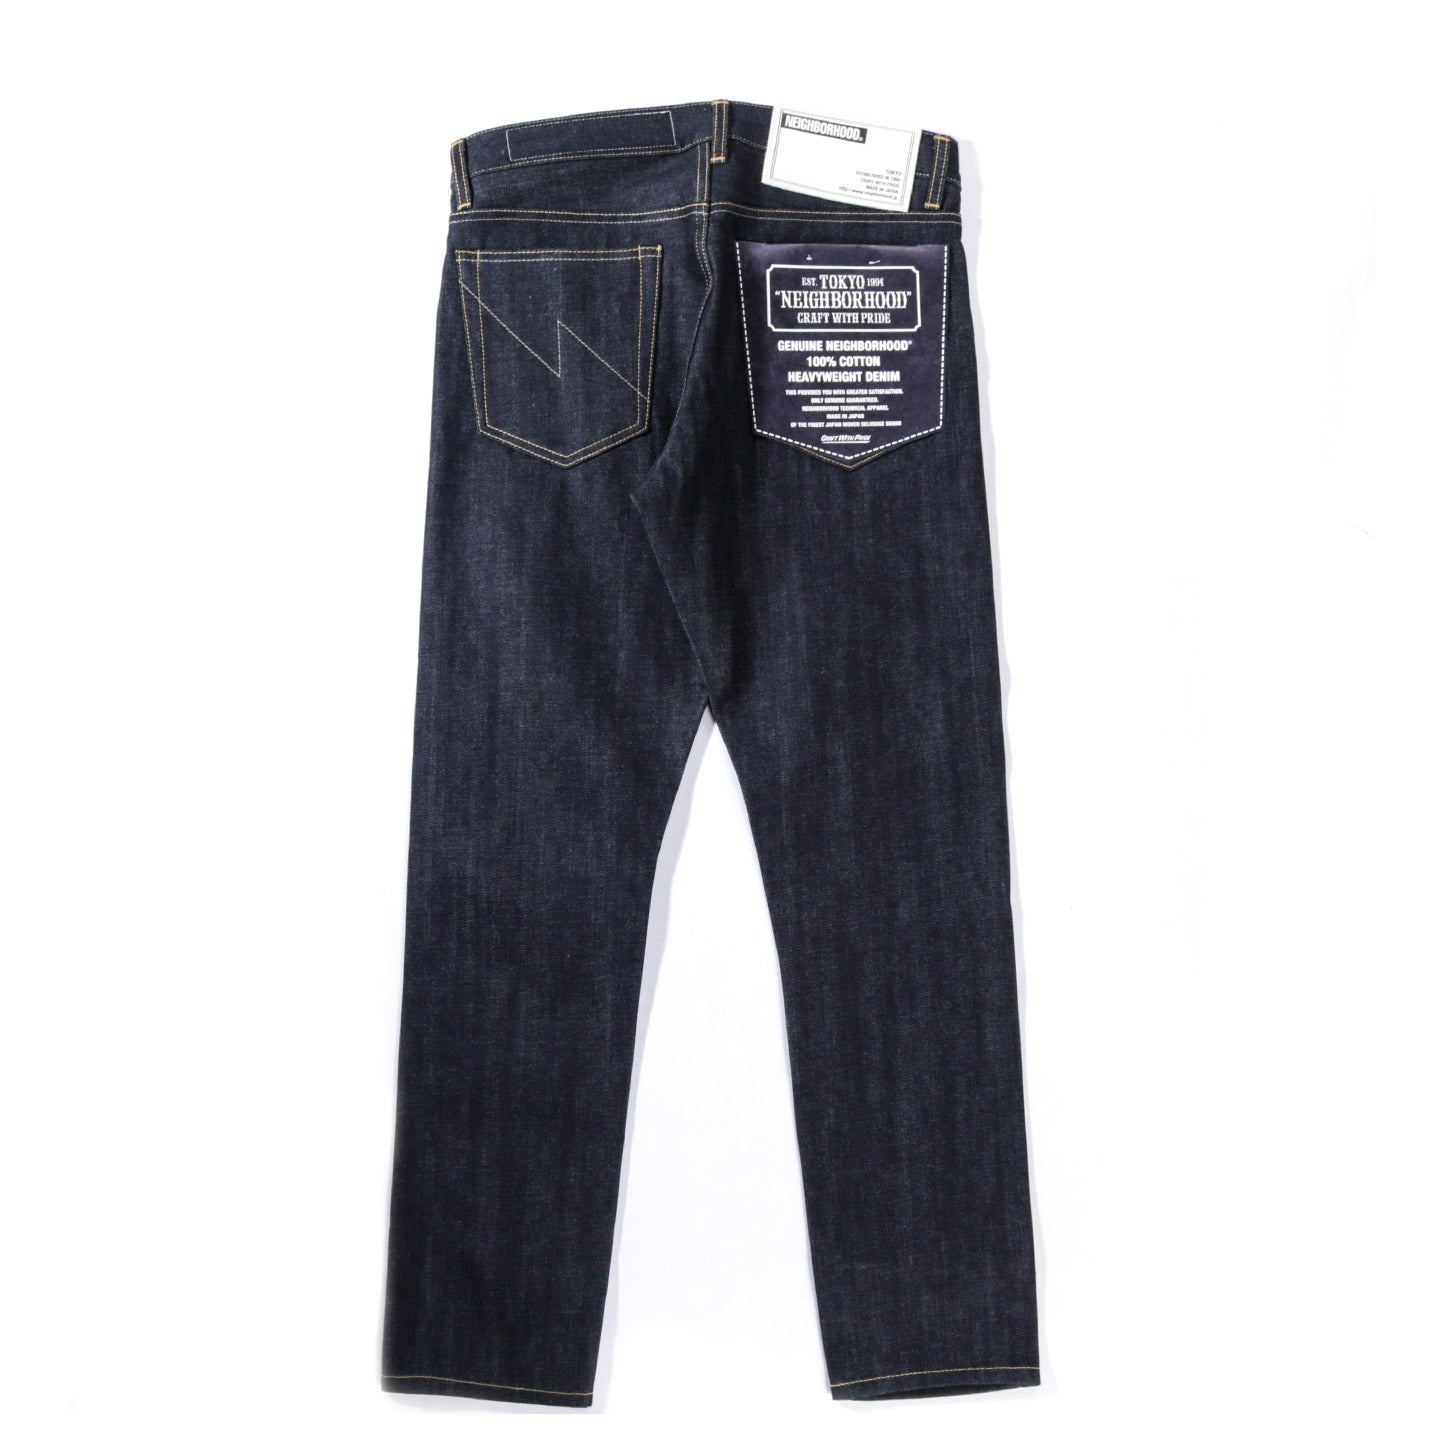 NEIGHBORHOOD RIGID DP NARROW 14OZ INDIGO